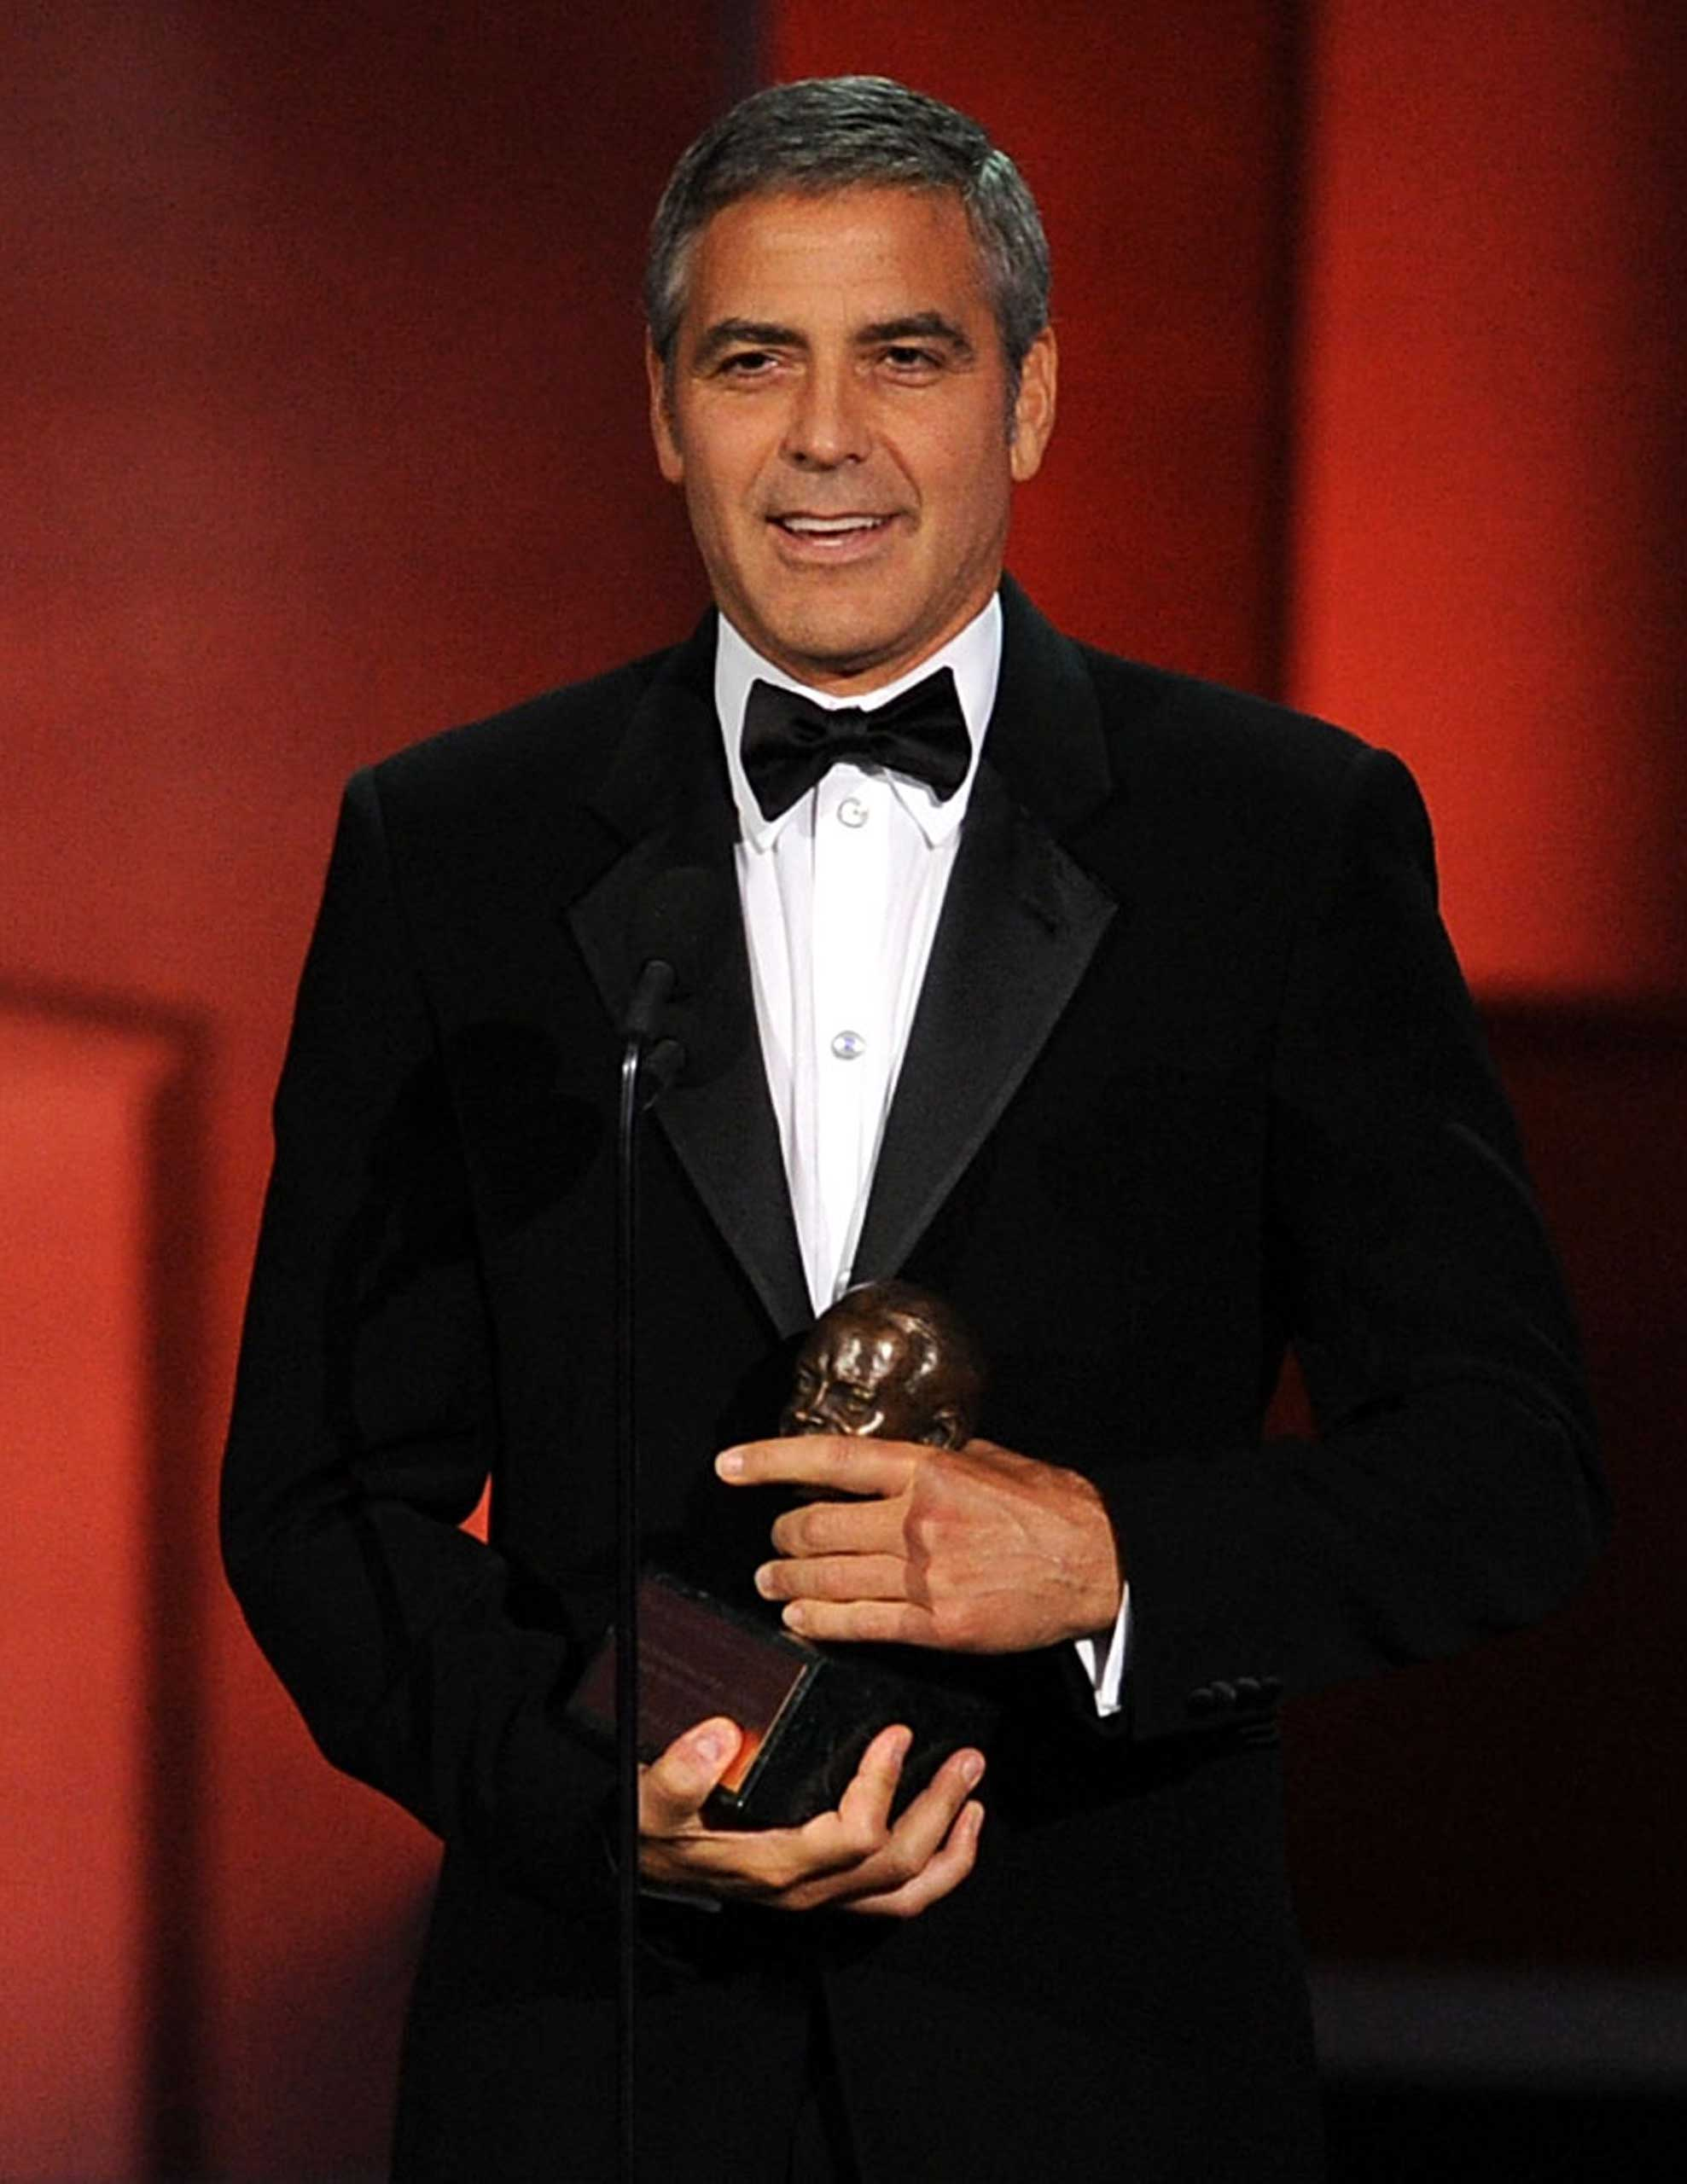 Clooney won the Bob Hope Humanitarian Emmy in 2010 for his work for the victims of the Haitian earthquake.